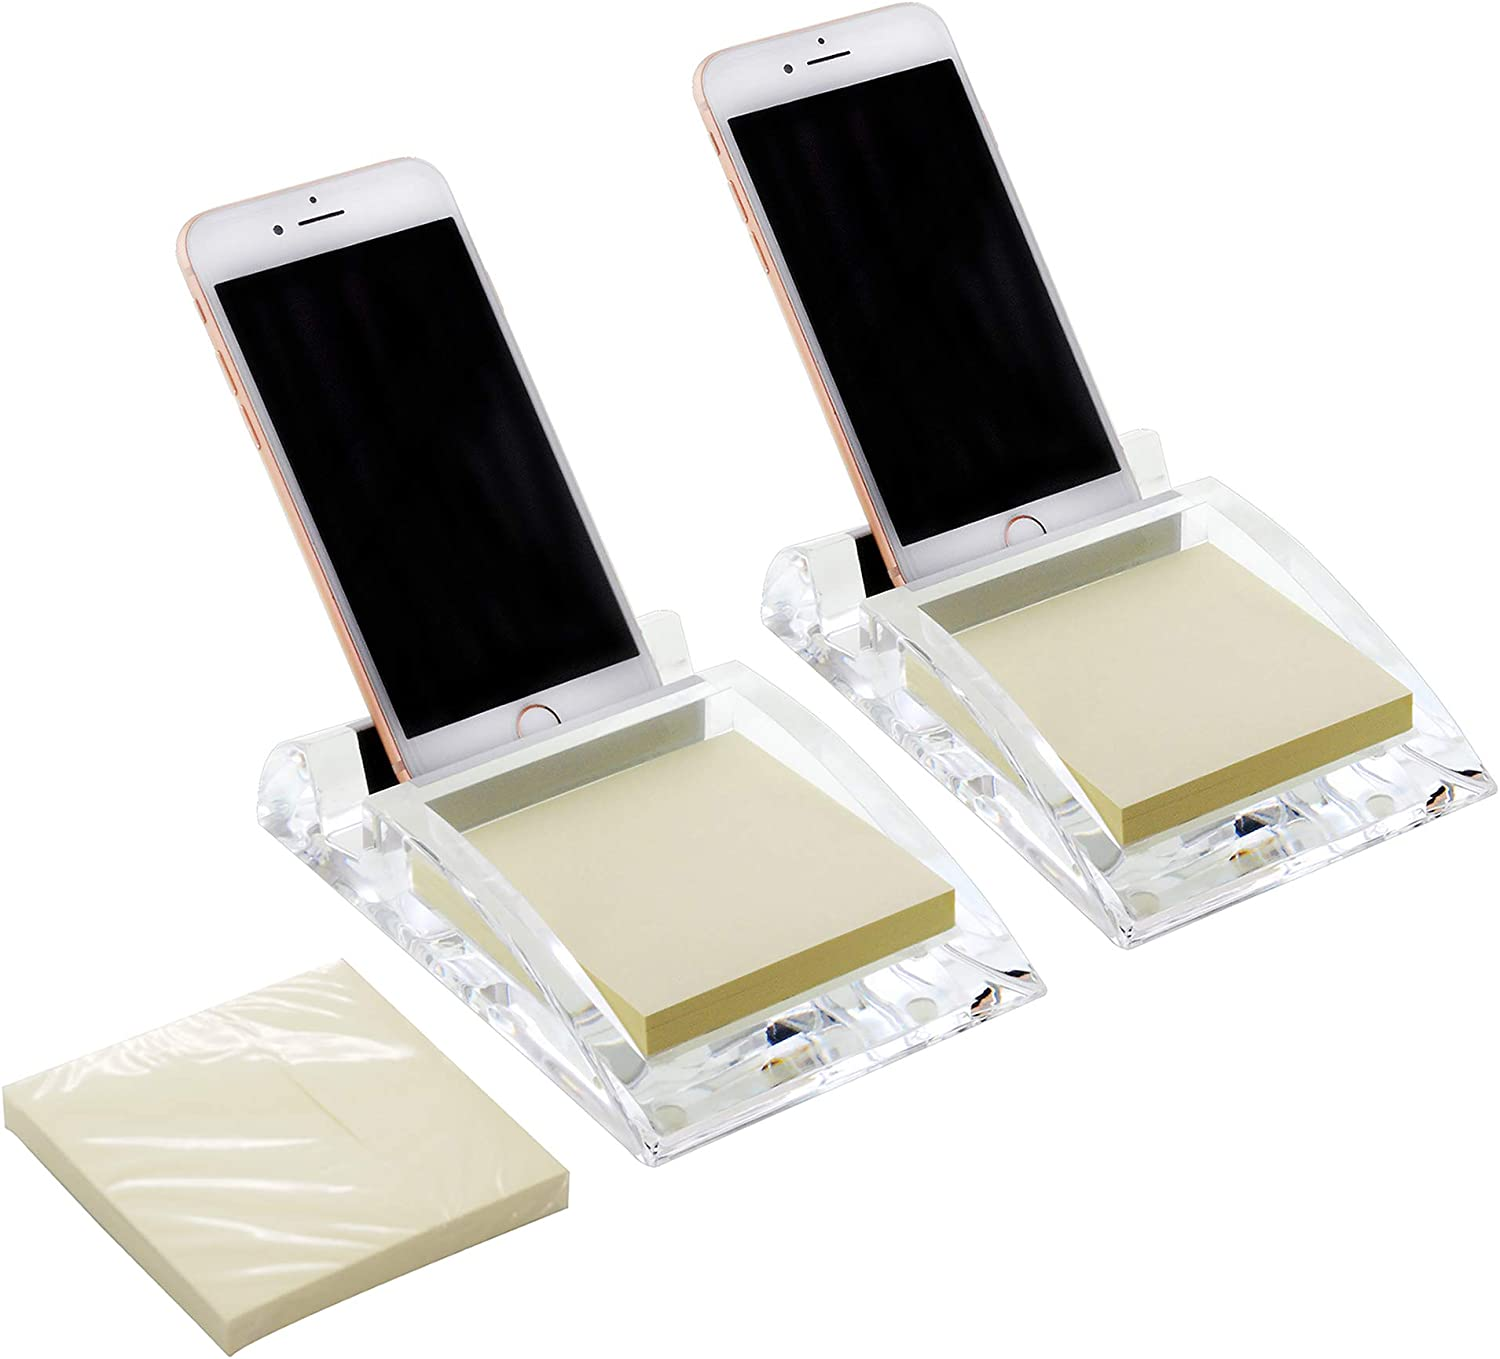 COM.TOP - Acrylic Desk Phone Stand with 3 x 3 Memo Pad,Phone Holder, Office Supplies, Stationery Organizer, Desk Accessories - Clear, 2 Pack (Includes 3 Memo Note)